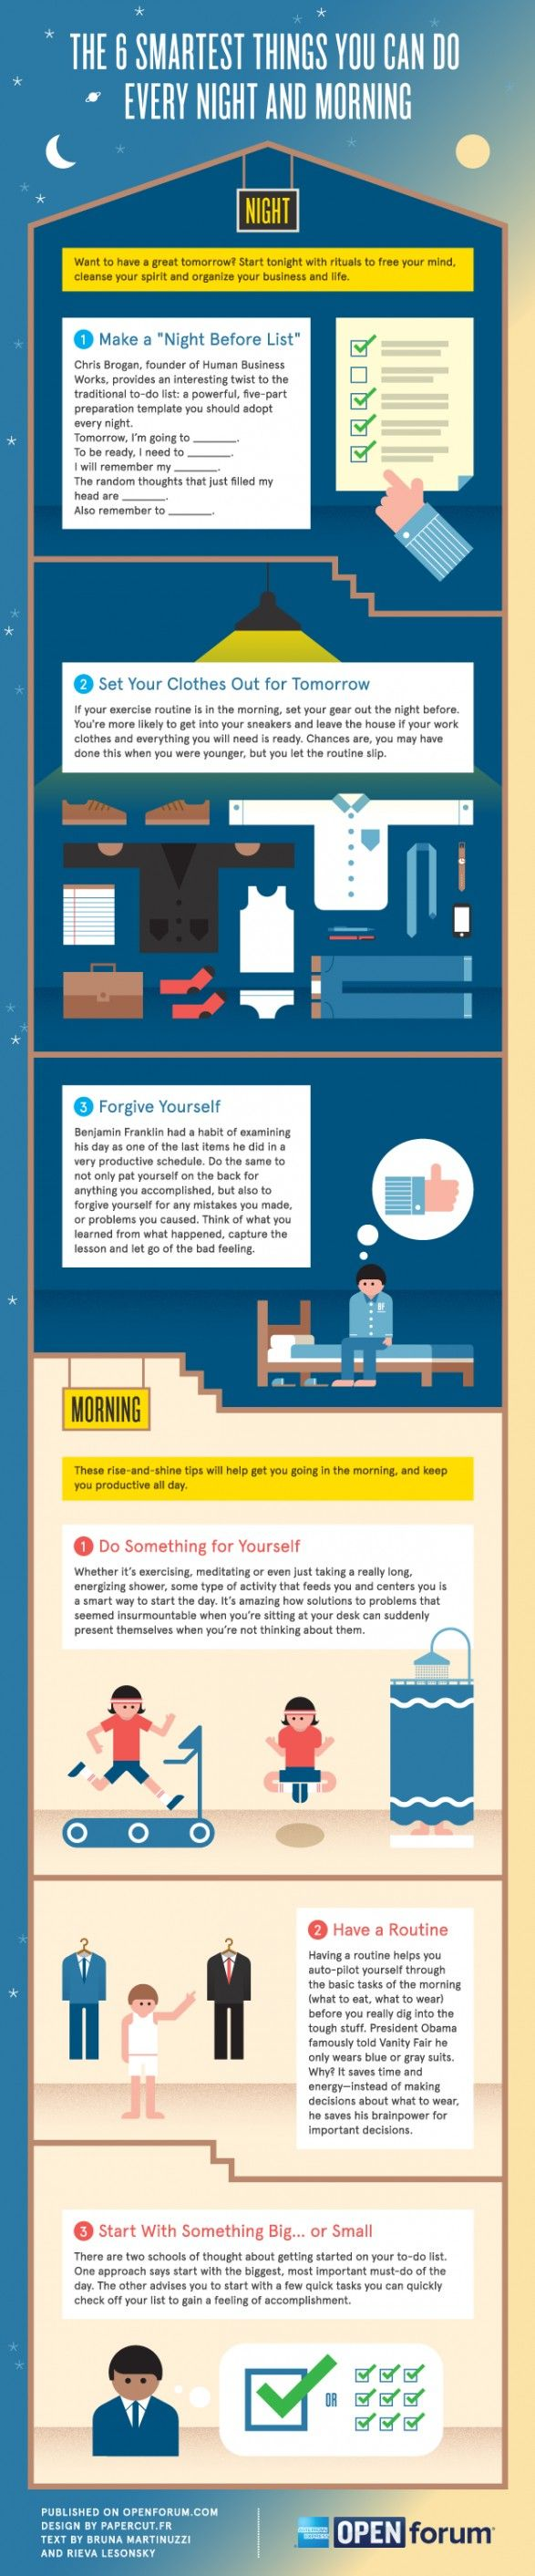 The Smartest Things You Can Do Every Night and Morning